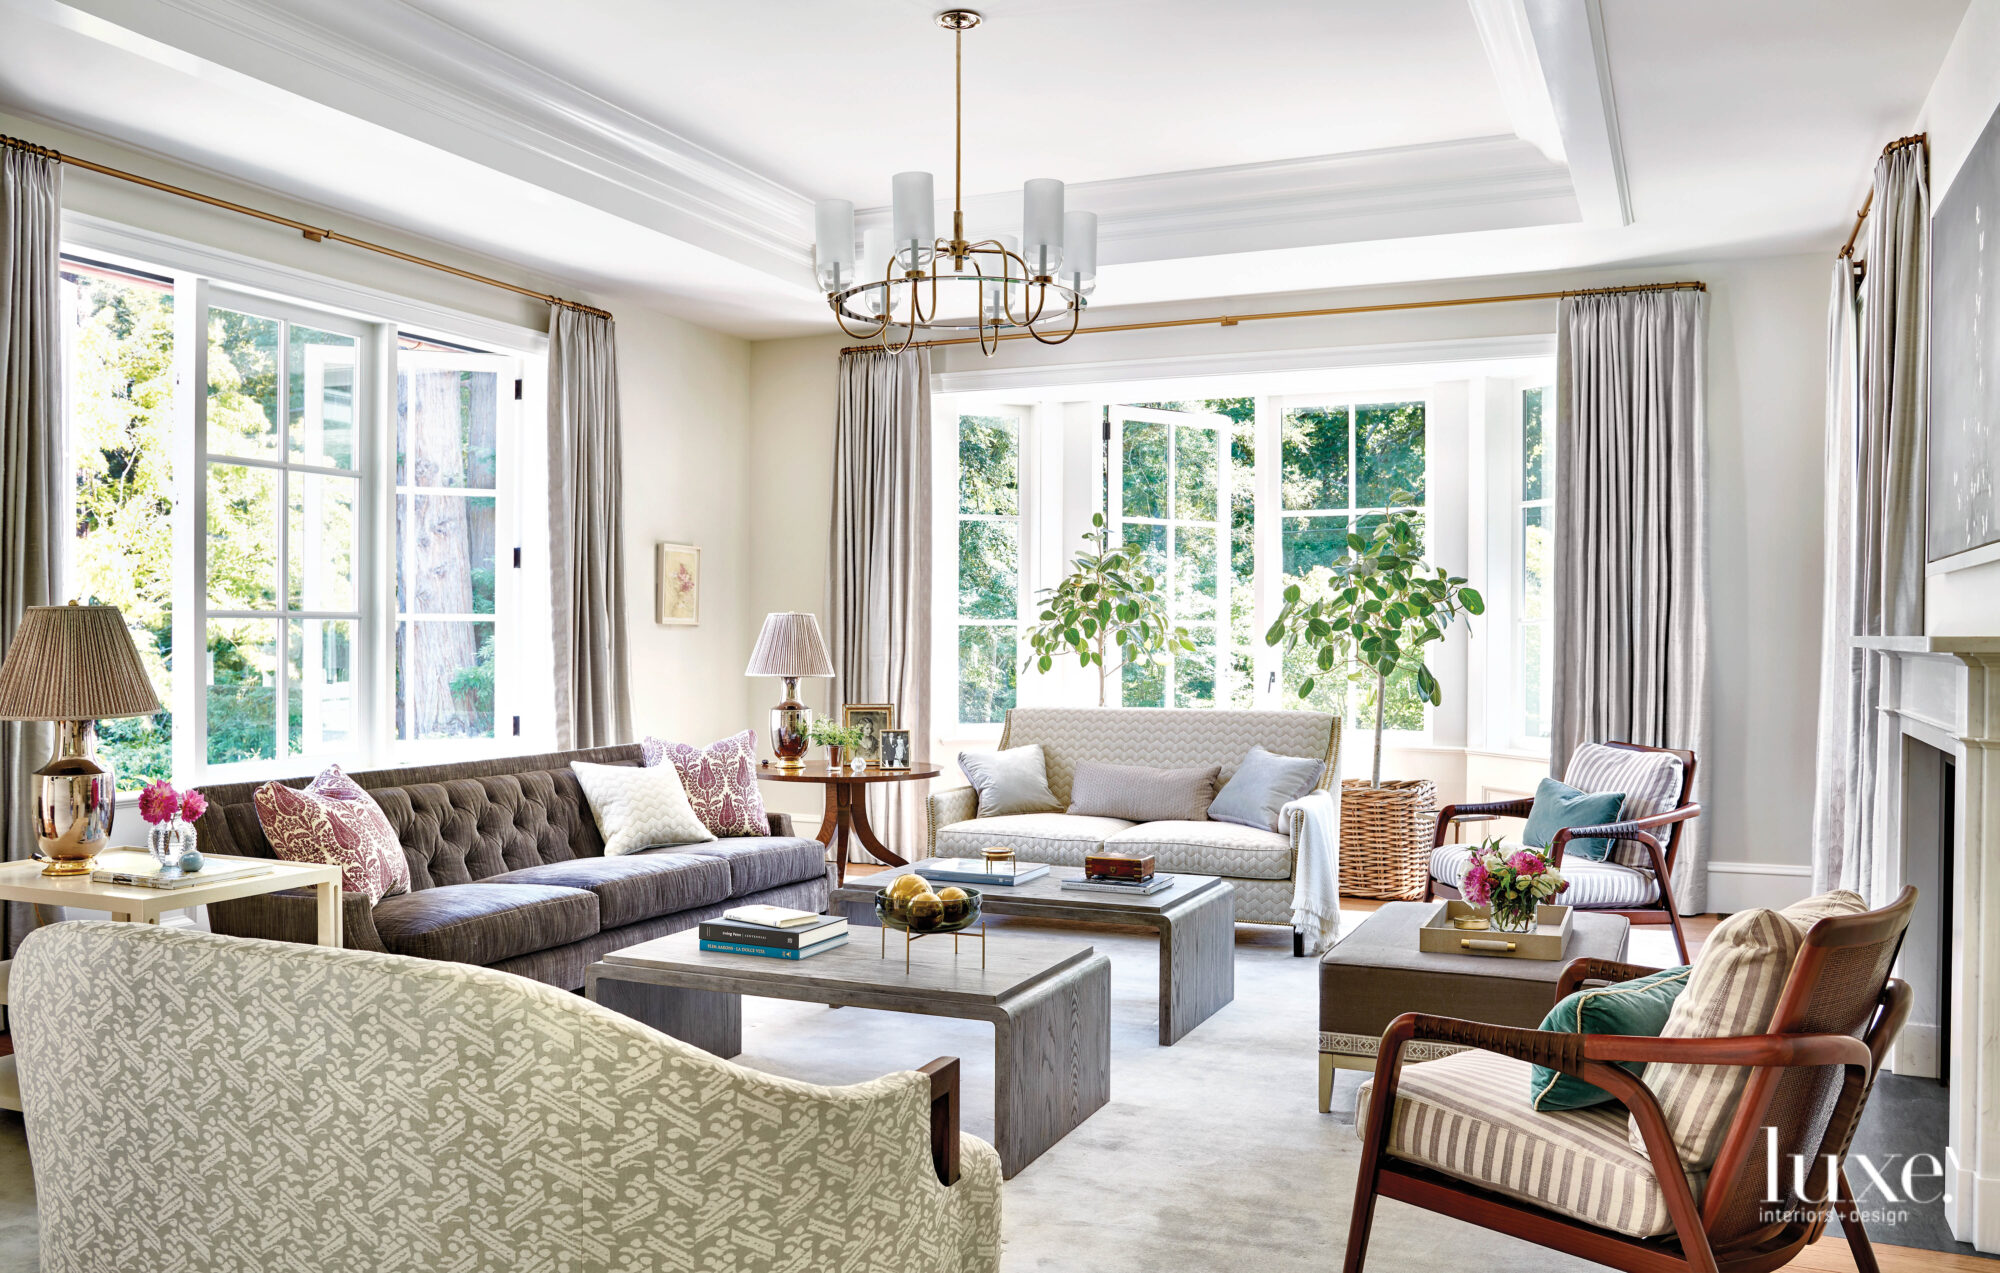 The living area has ample seating with three sofas and a pair of armchairs.